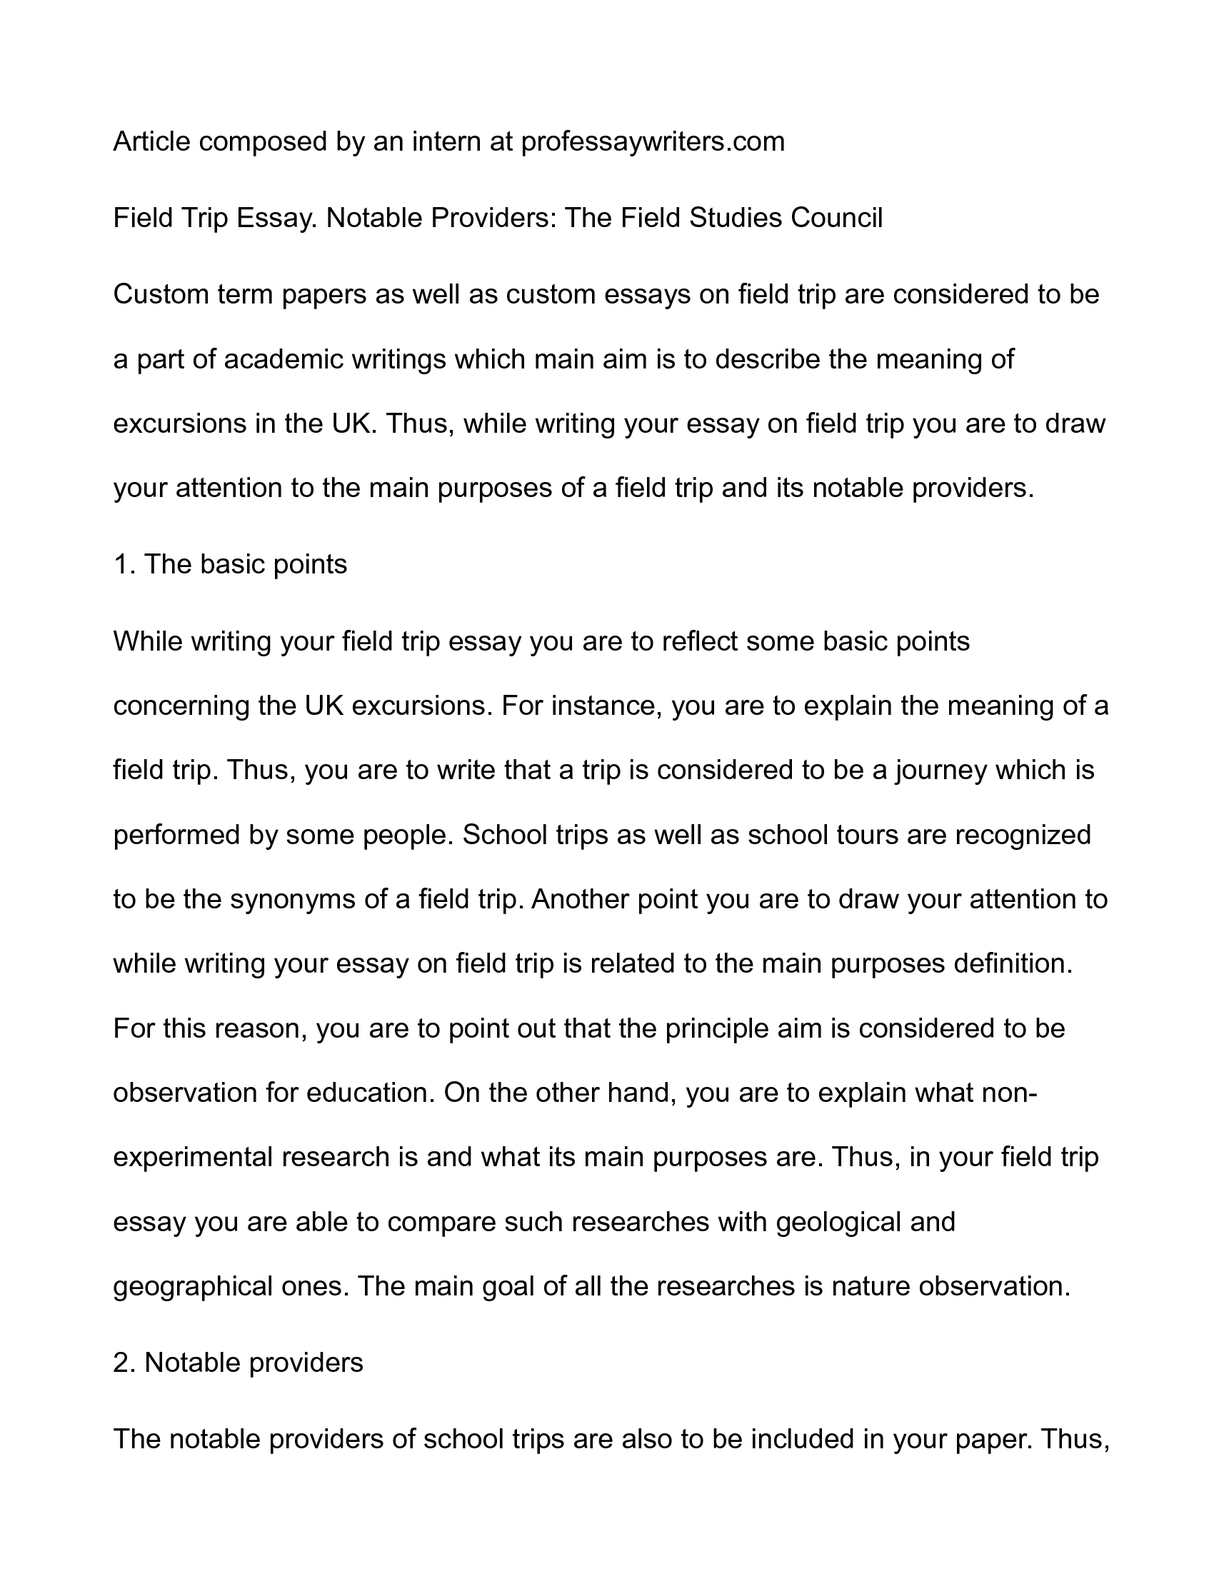 a school excursion essay 91 121 113 106 a school excursion essay